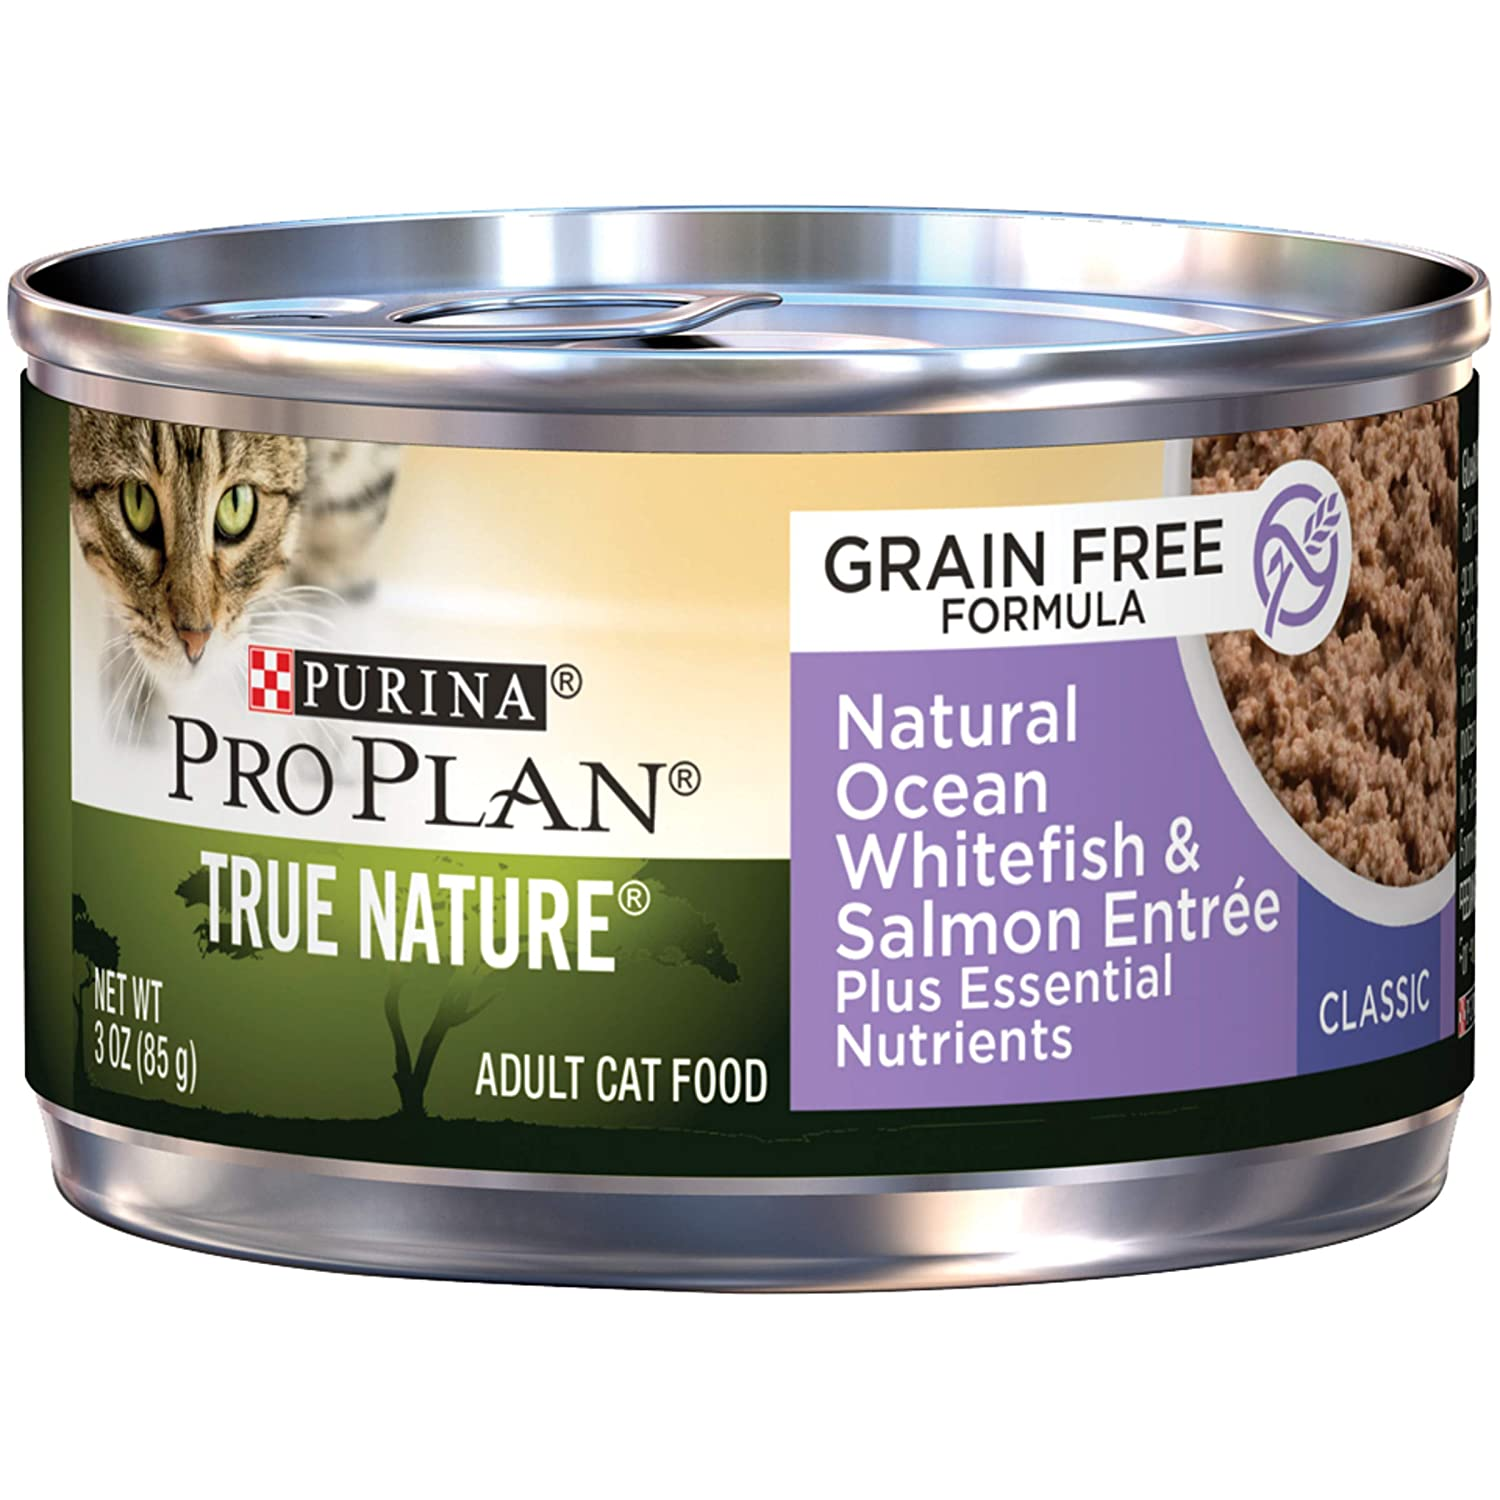 Purina Pro Plan Wet Cat Food, True Nature, Grain Free, Ocean Whitefish and Salmon Entrée, 3-Ounce Can, Pack of 24